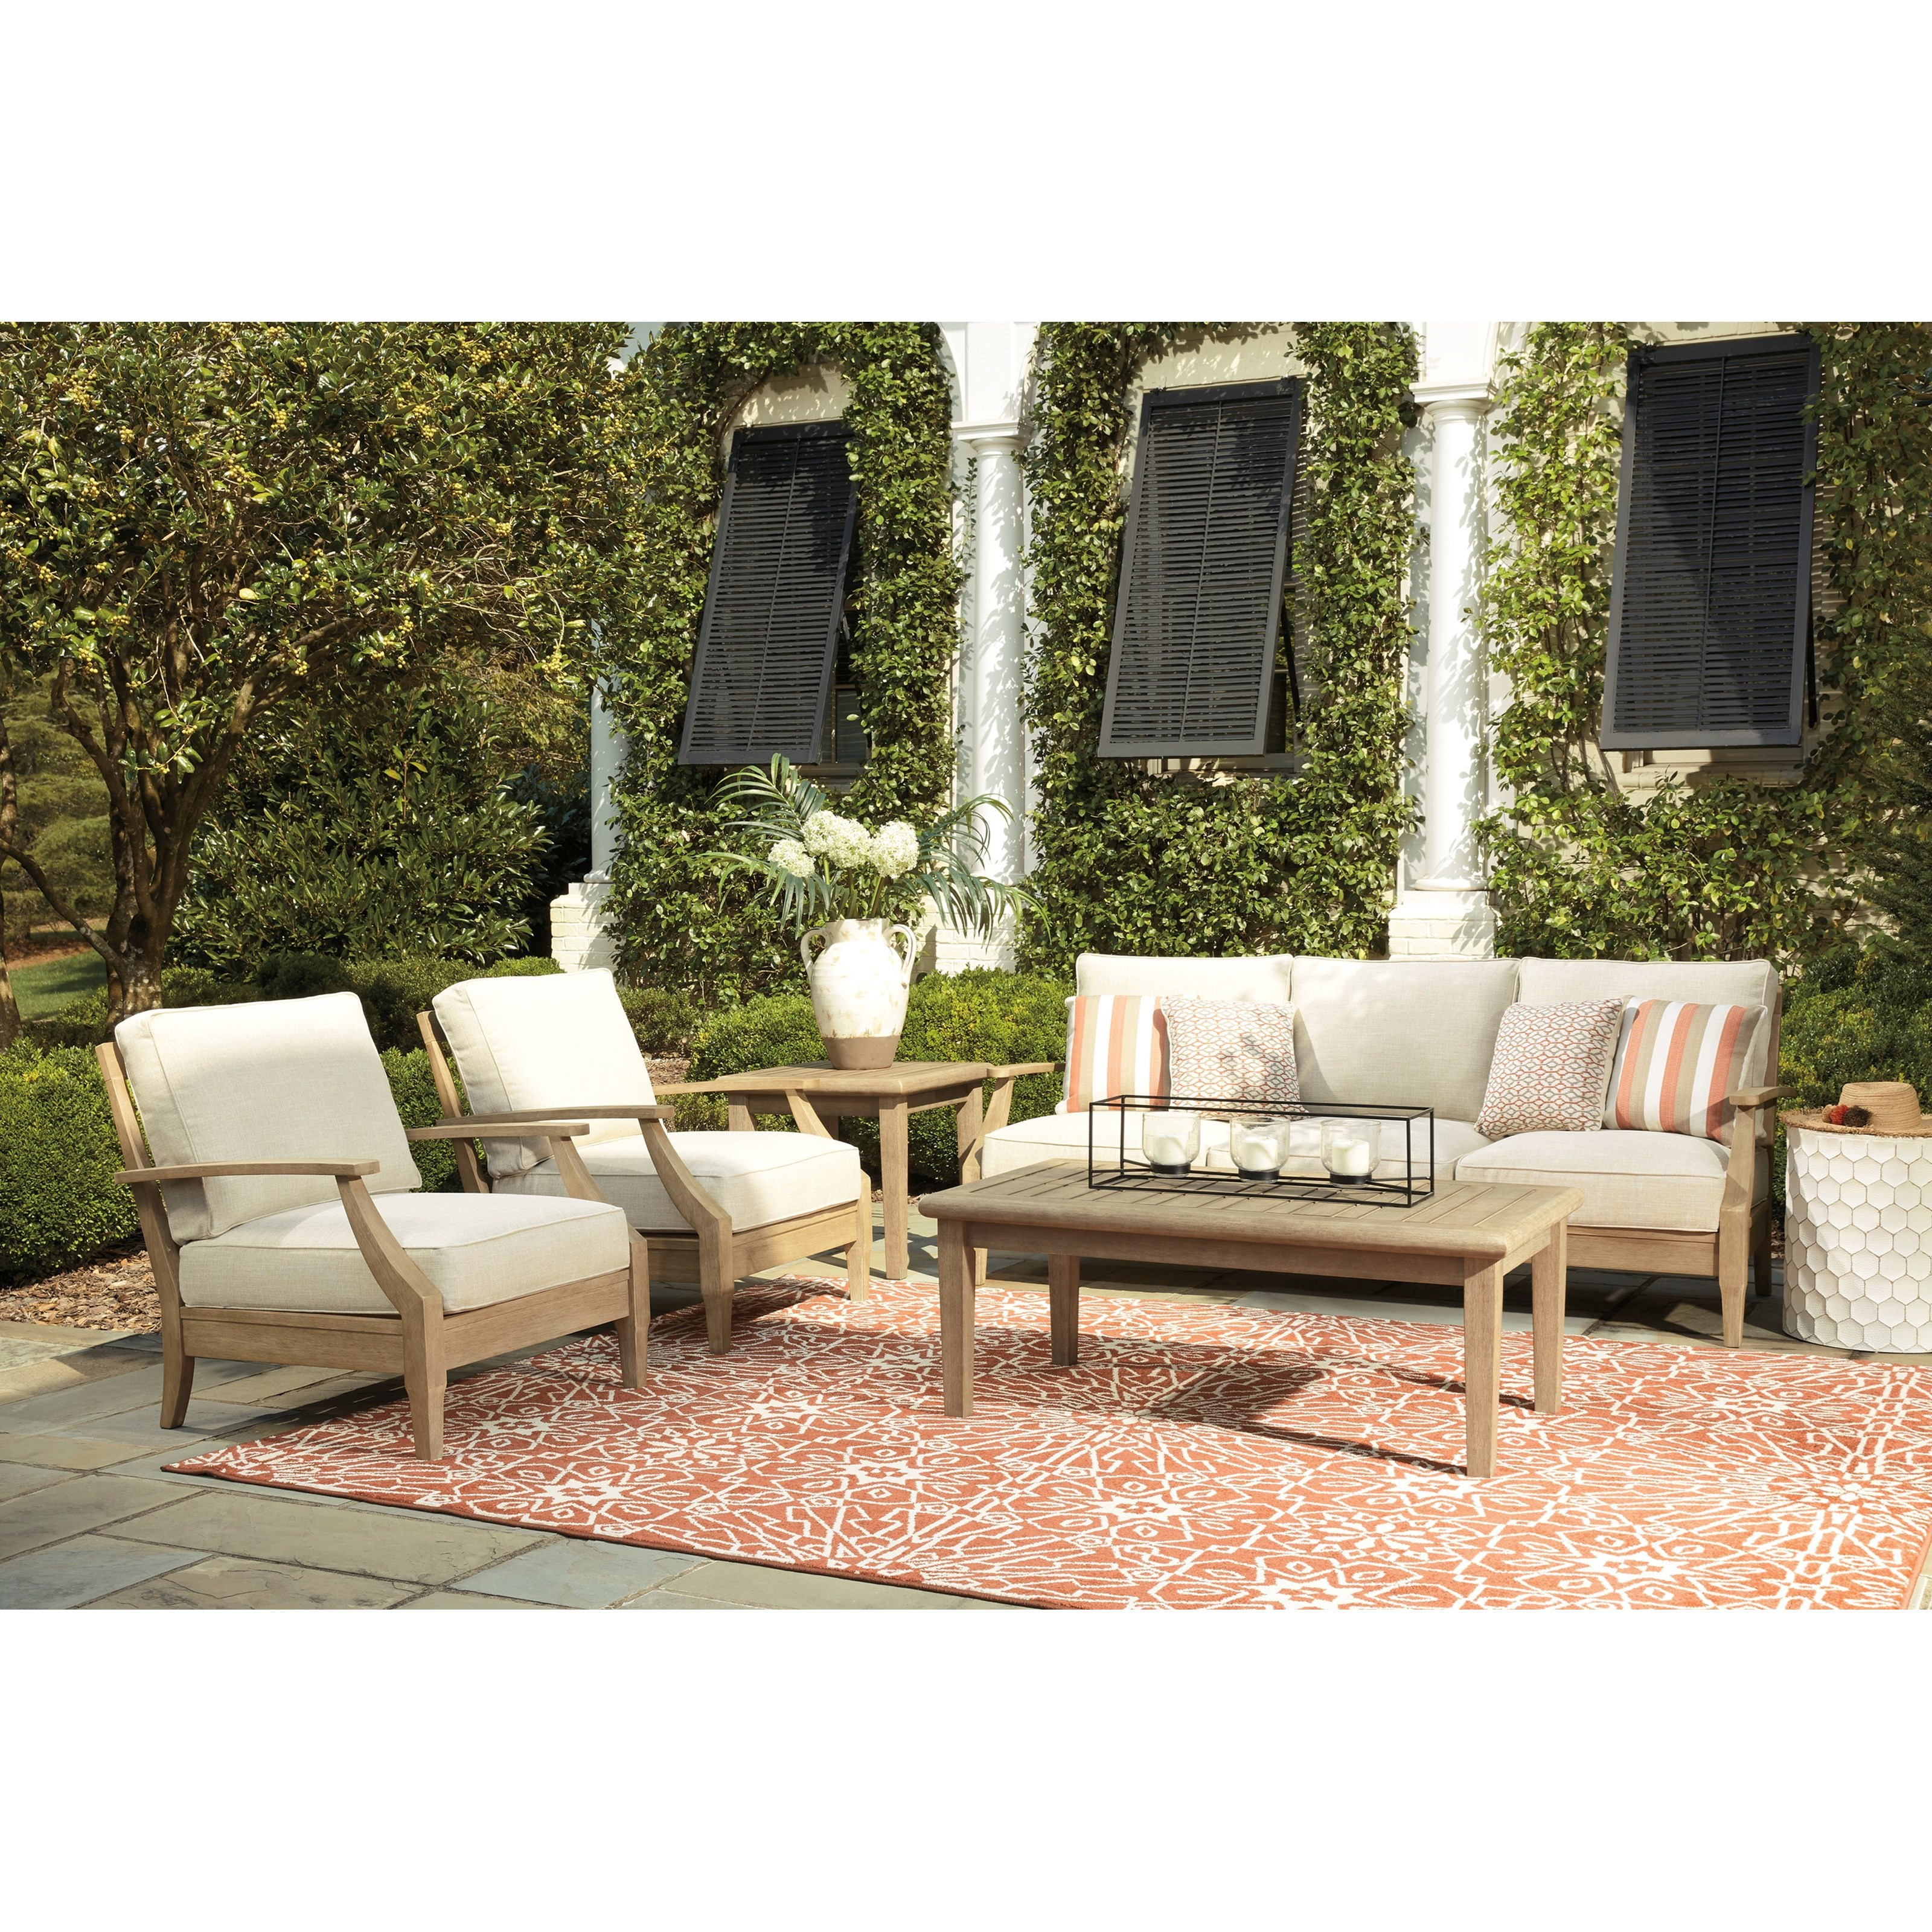 Clare View Outdoor Conversation Set by Signature Design by Ashley at Wayside Furniture